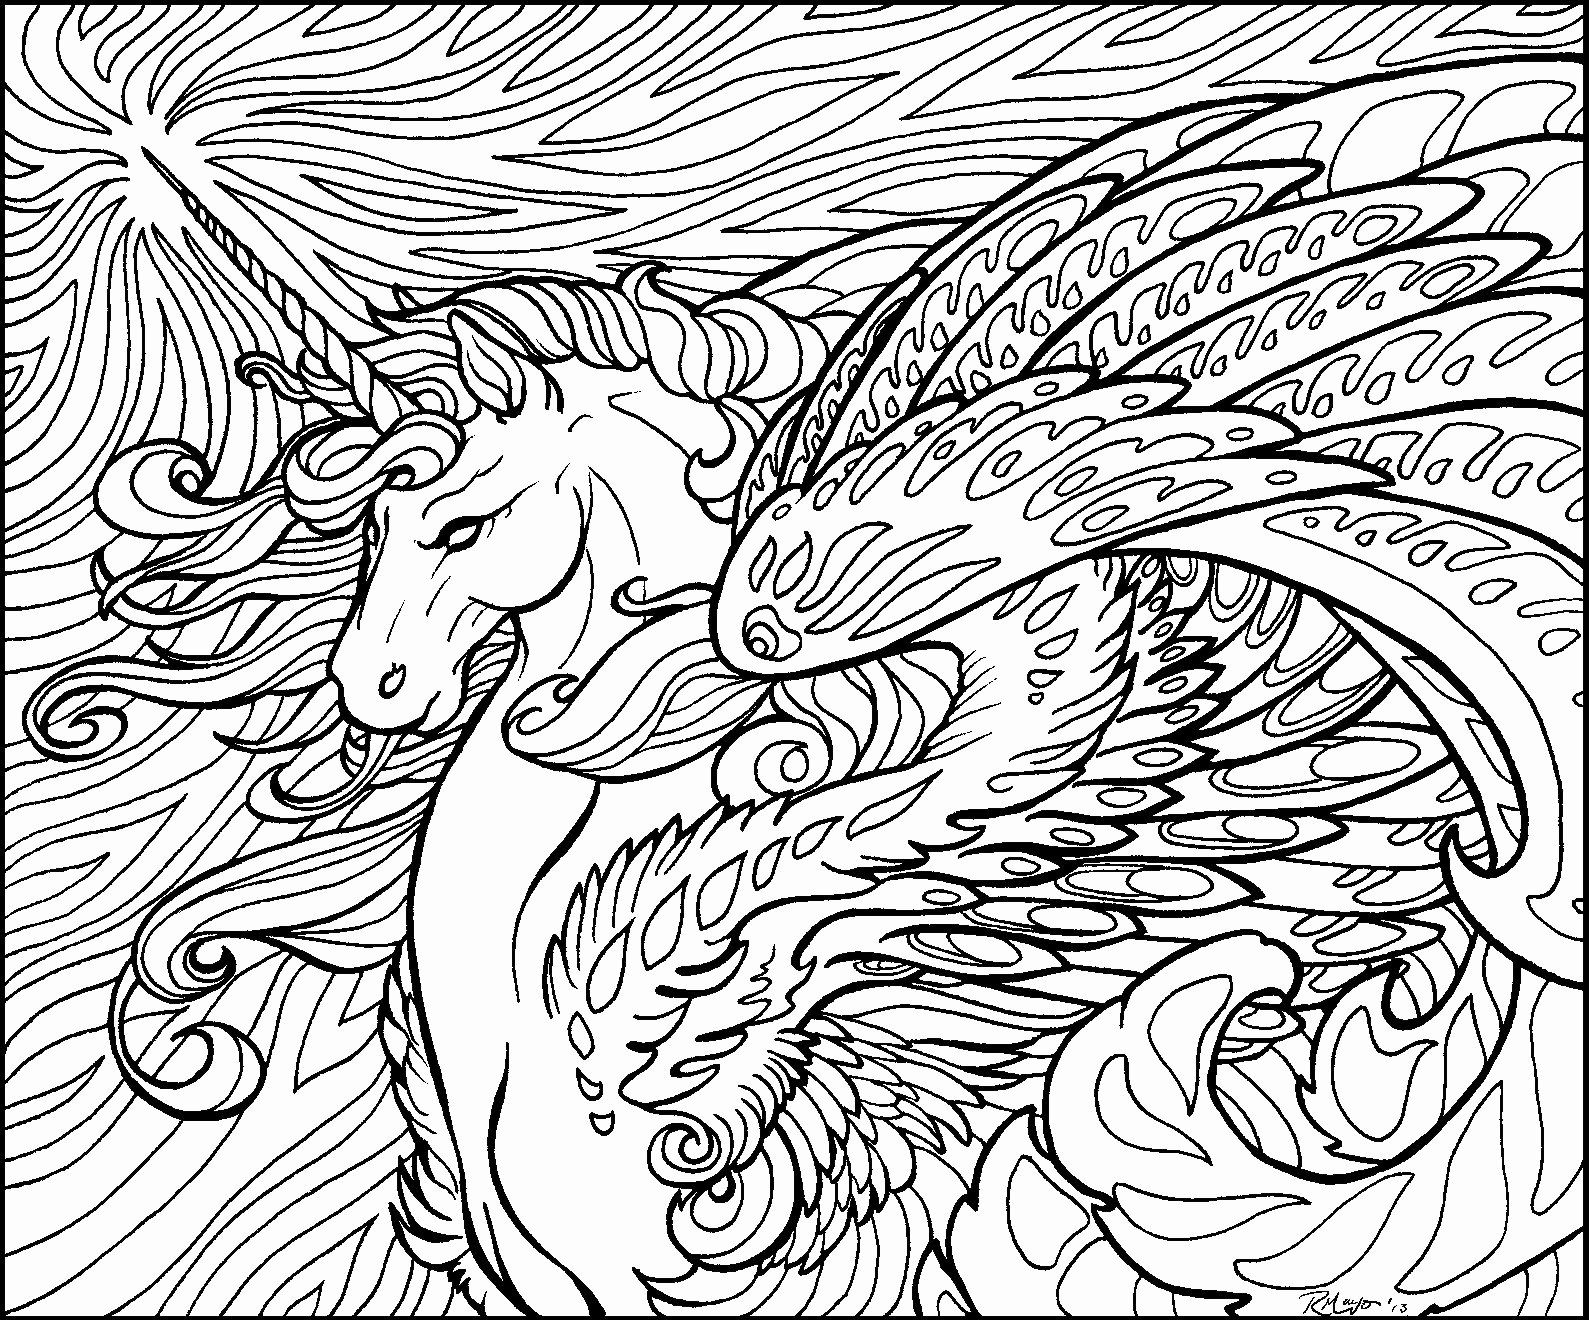 Dragons Printable Coloring Pages Luxury Detailed Dragon Coloring Pages For Adults In 2020 Horse Coloring Pages Dragon Coloring Page Unicorn Coloring Pages